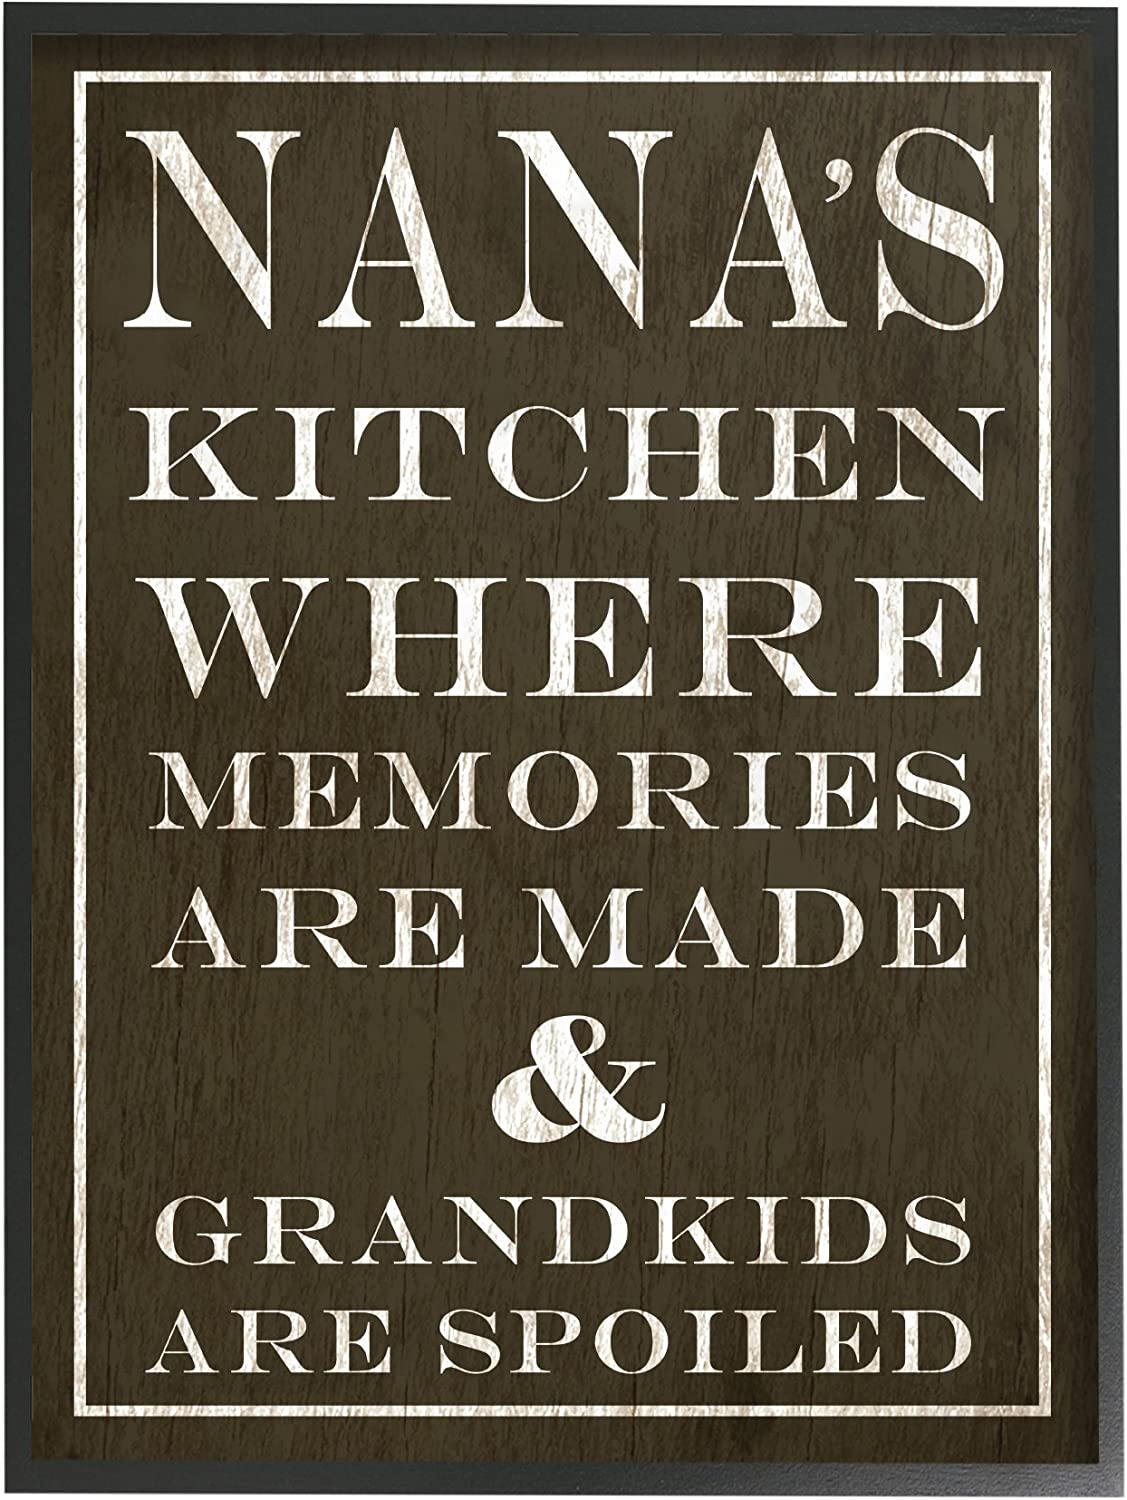 The Stupell Home Decor Collection Nanas Kitchen and Spoiled Grandkids Dark Framed Giclee Texturized Art, 11 x 1.5 x 14, Proudly Made in USA